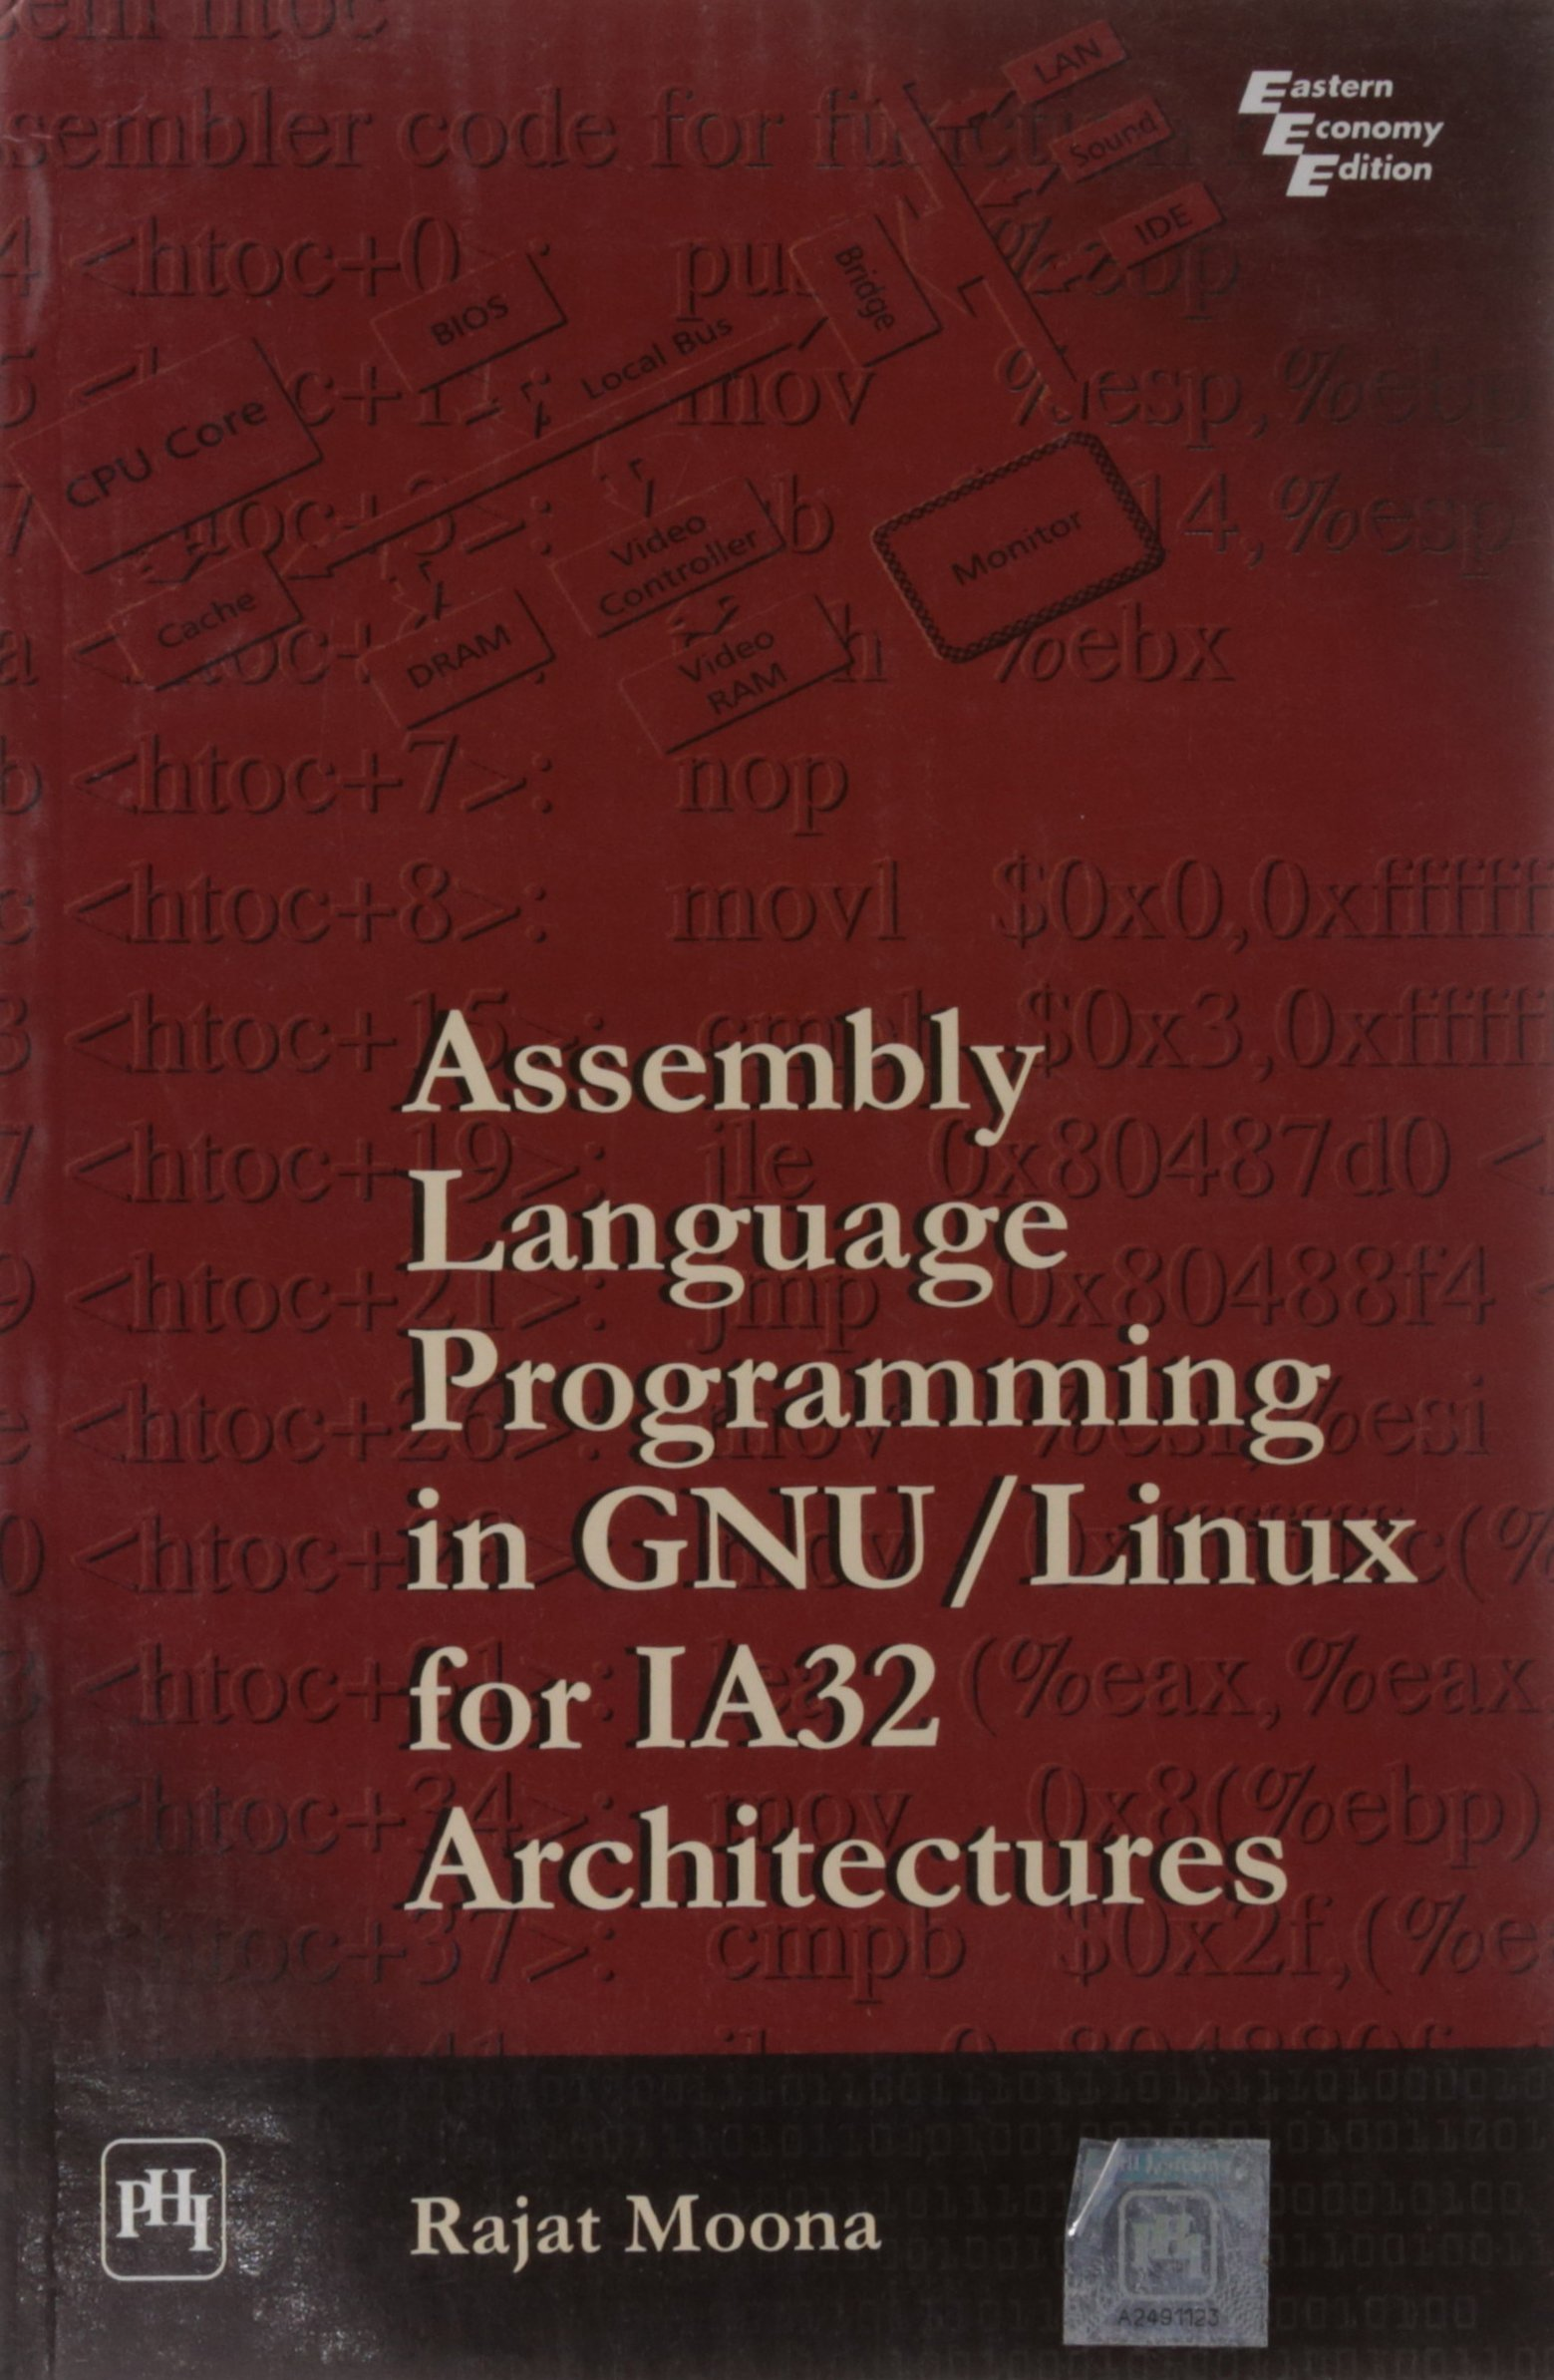 Assembly Language Programming in GNU/Linux for IA32 Architectures by TBS